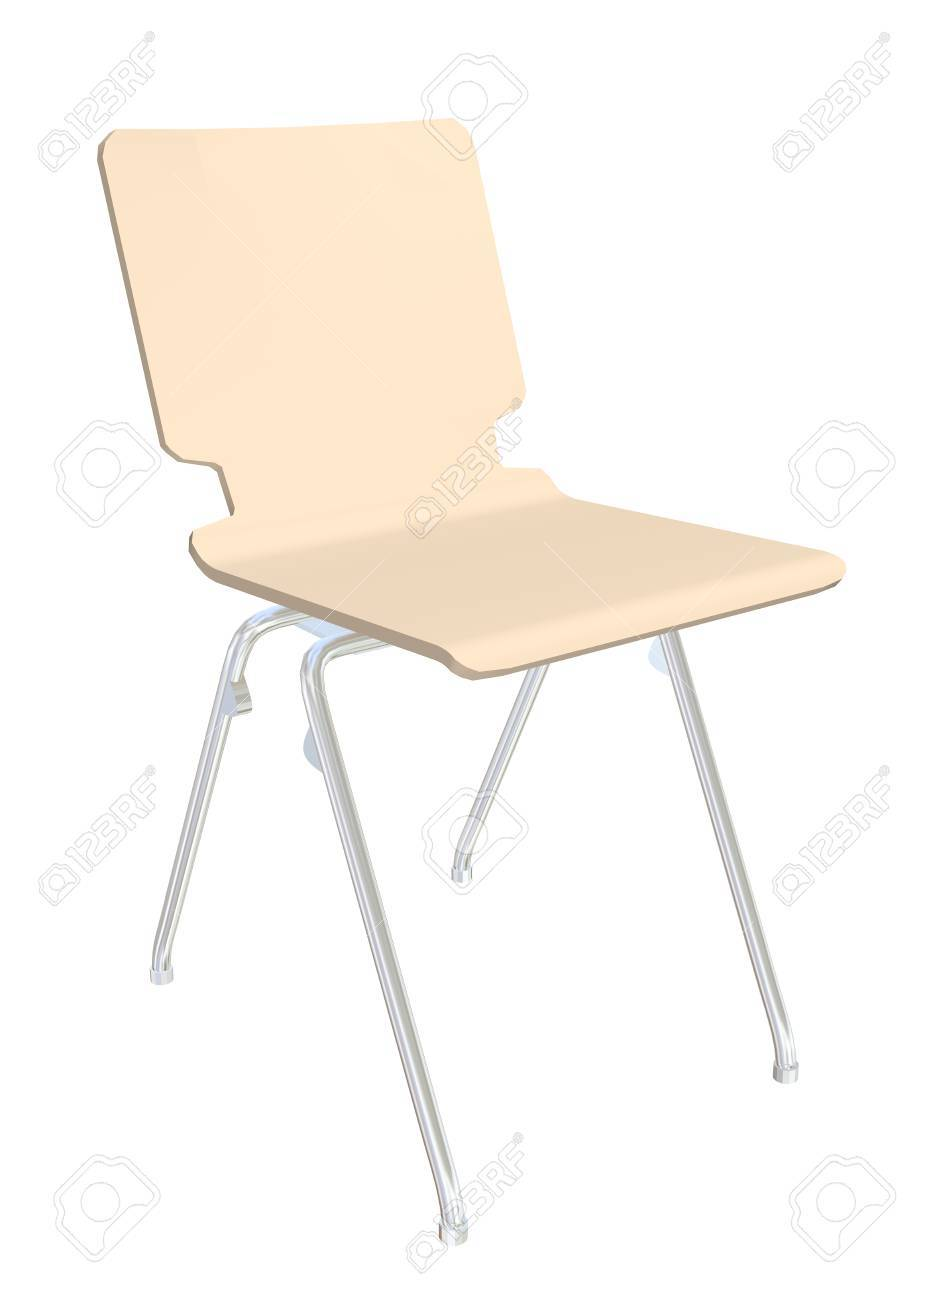 Plastic chair metal legs - Stackable Plastic Chair Cream Metal Legs 3d Illustration Isolated Against A White